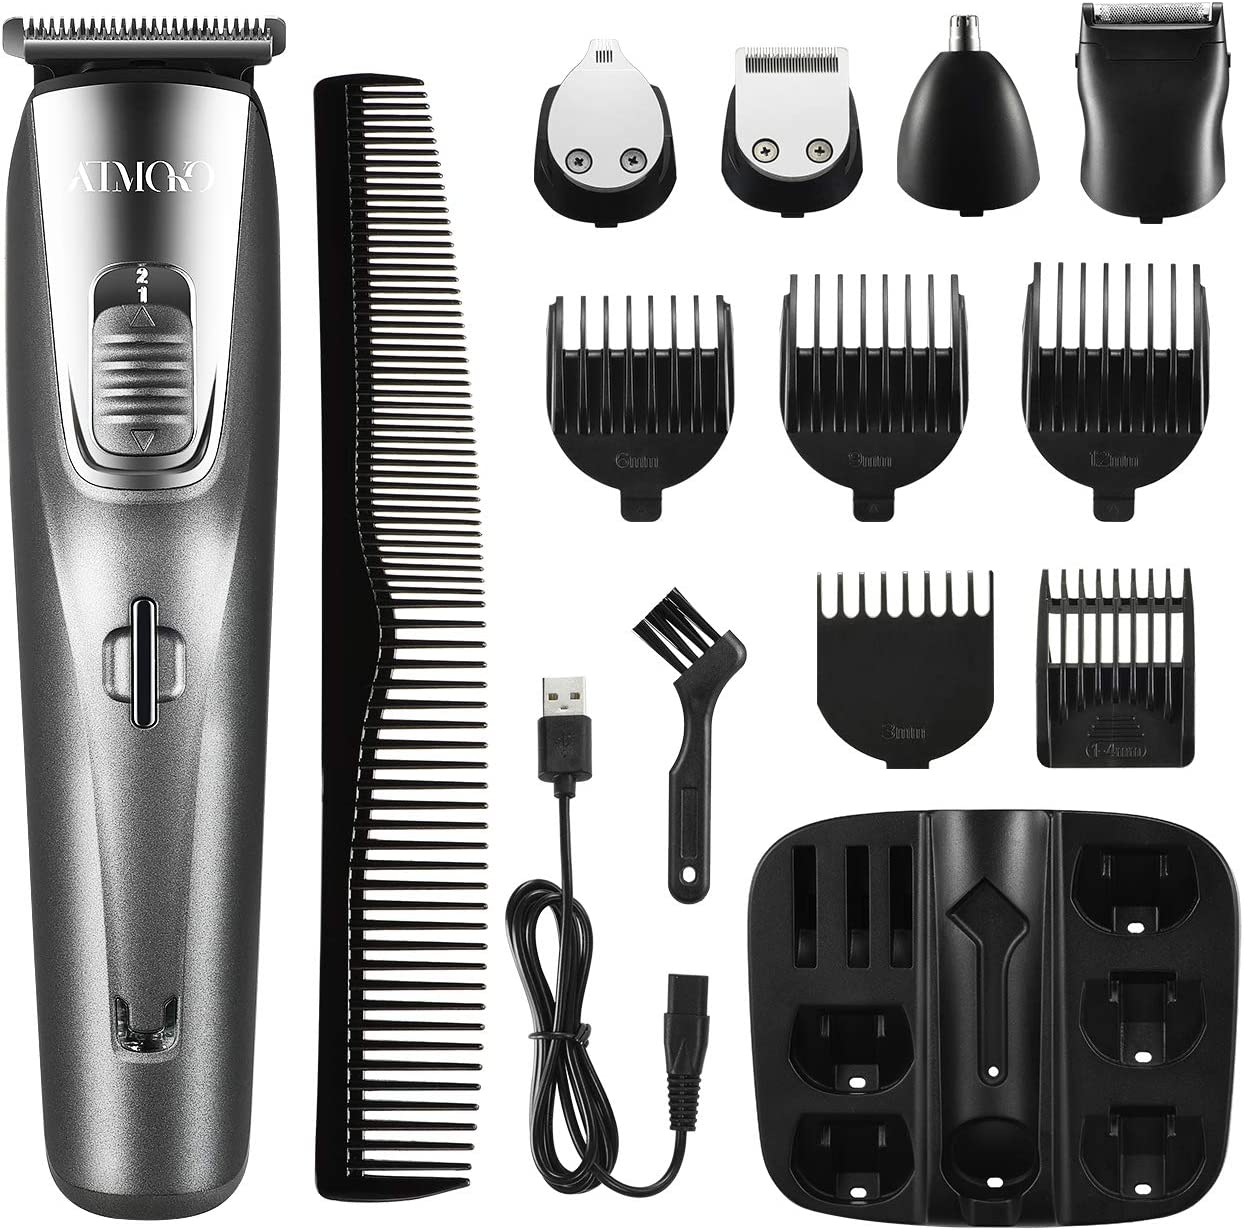 ATMOKO 5 in 1 Beard Trimmer Cordless  Facial Trimmer and Body Groomer Set WAS £29.99 NOW £9.99 w/code 8SIGM6HP @ Amazon